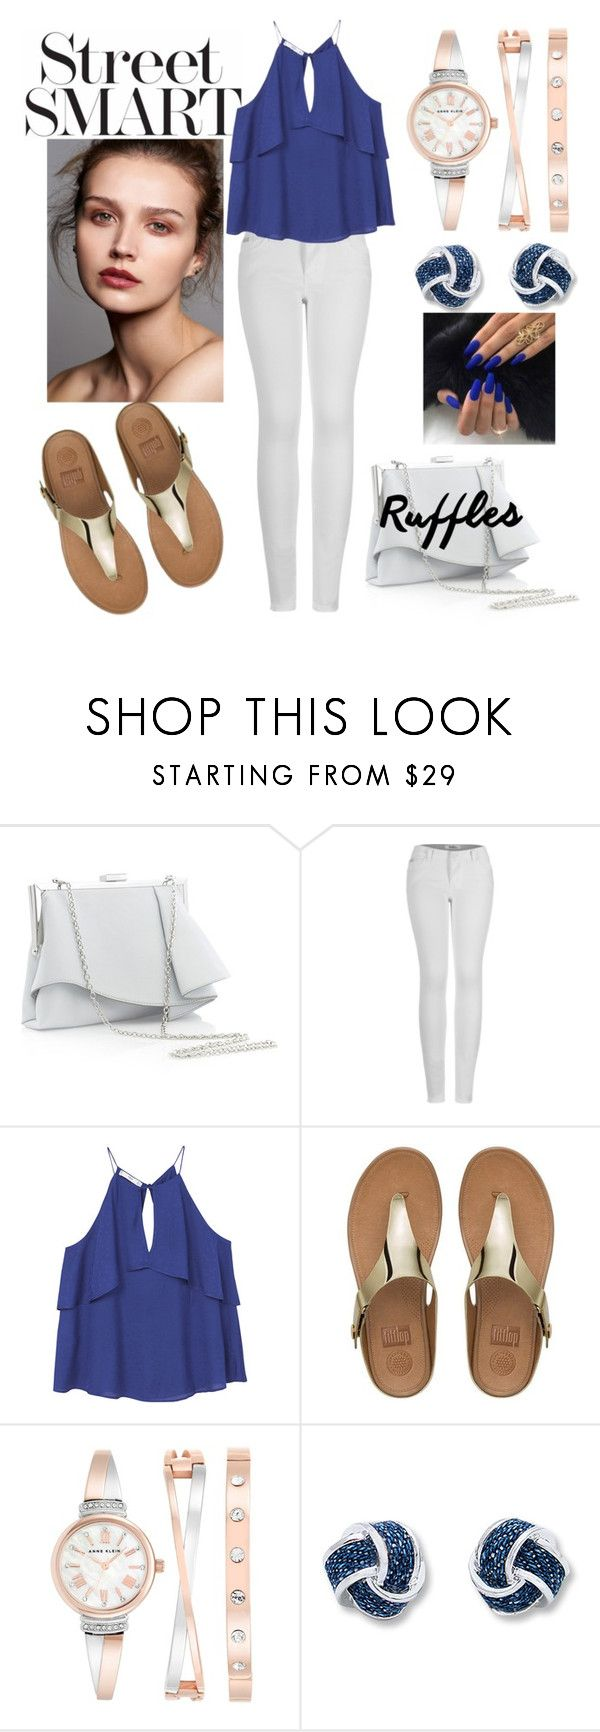 """ADD SOME FLAIR: RuffledTops❤"" by emilizastyles ❤ liked on Polyvore featuring Coast, 2LUV, MANGO, FitFlop, Anne Klein, ruffles, streetsmart and ruffledtops"